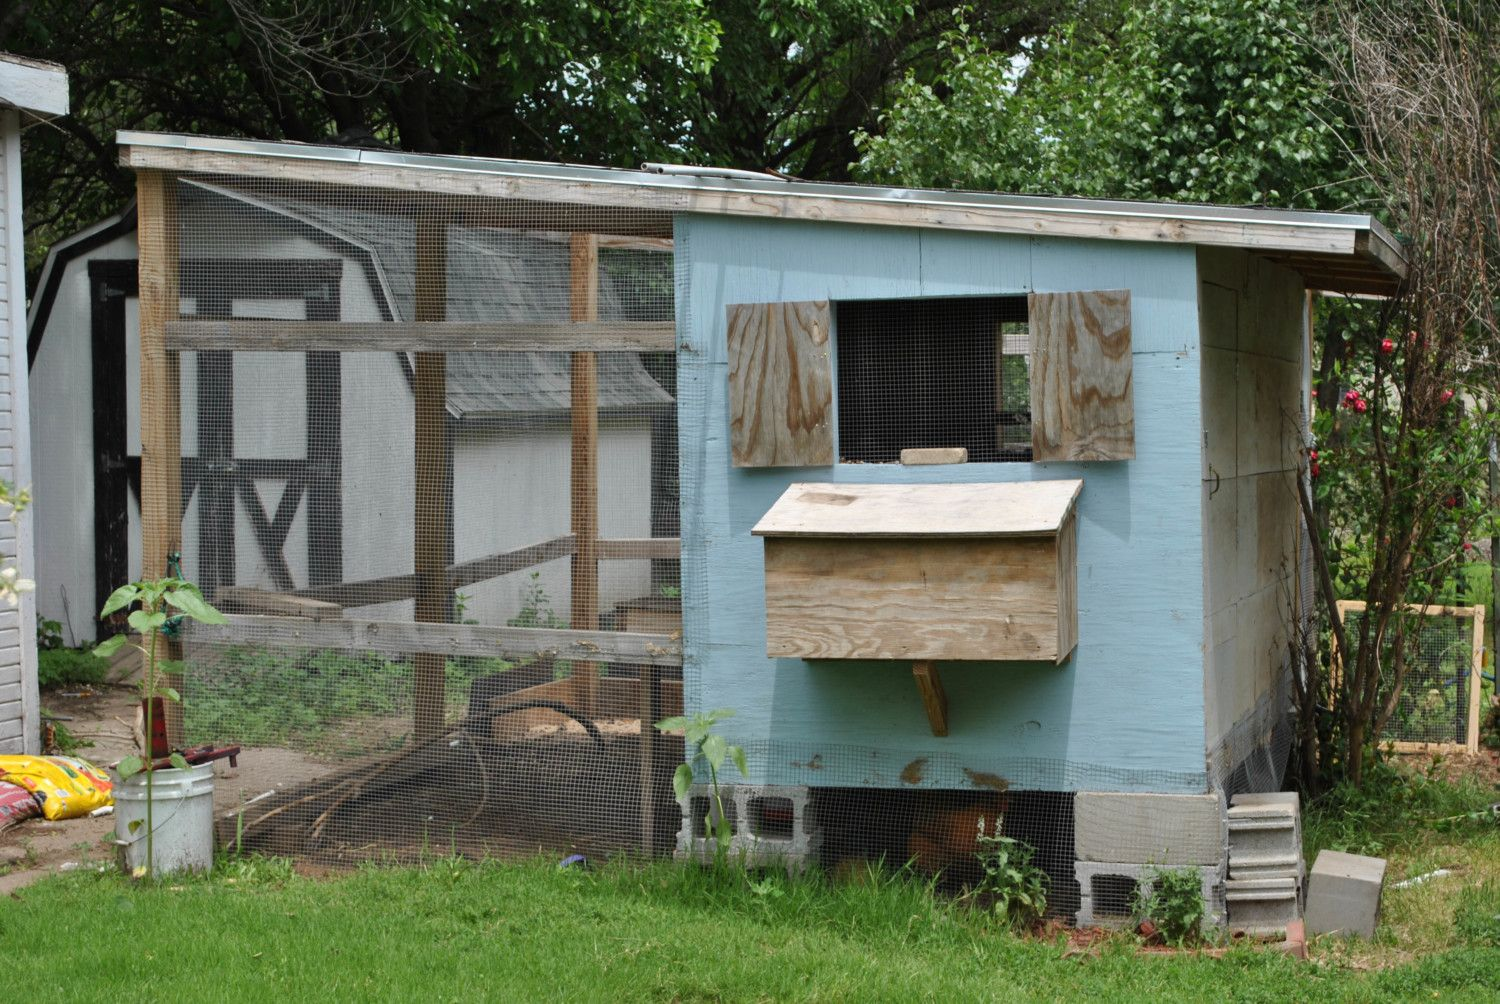 Painting A Scene Onto The Side Of Coop Ideas Backyard Chickens Learn How To Raise Chickens